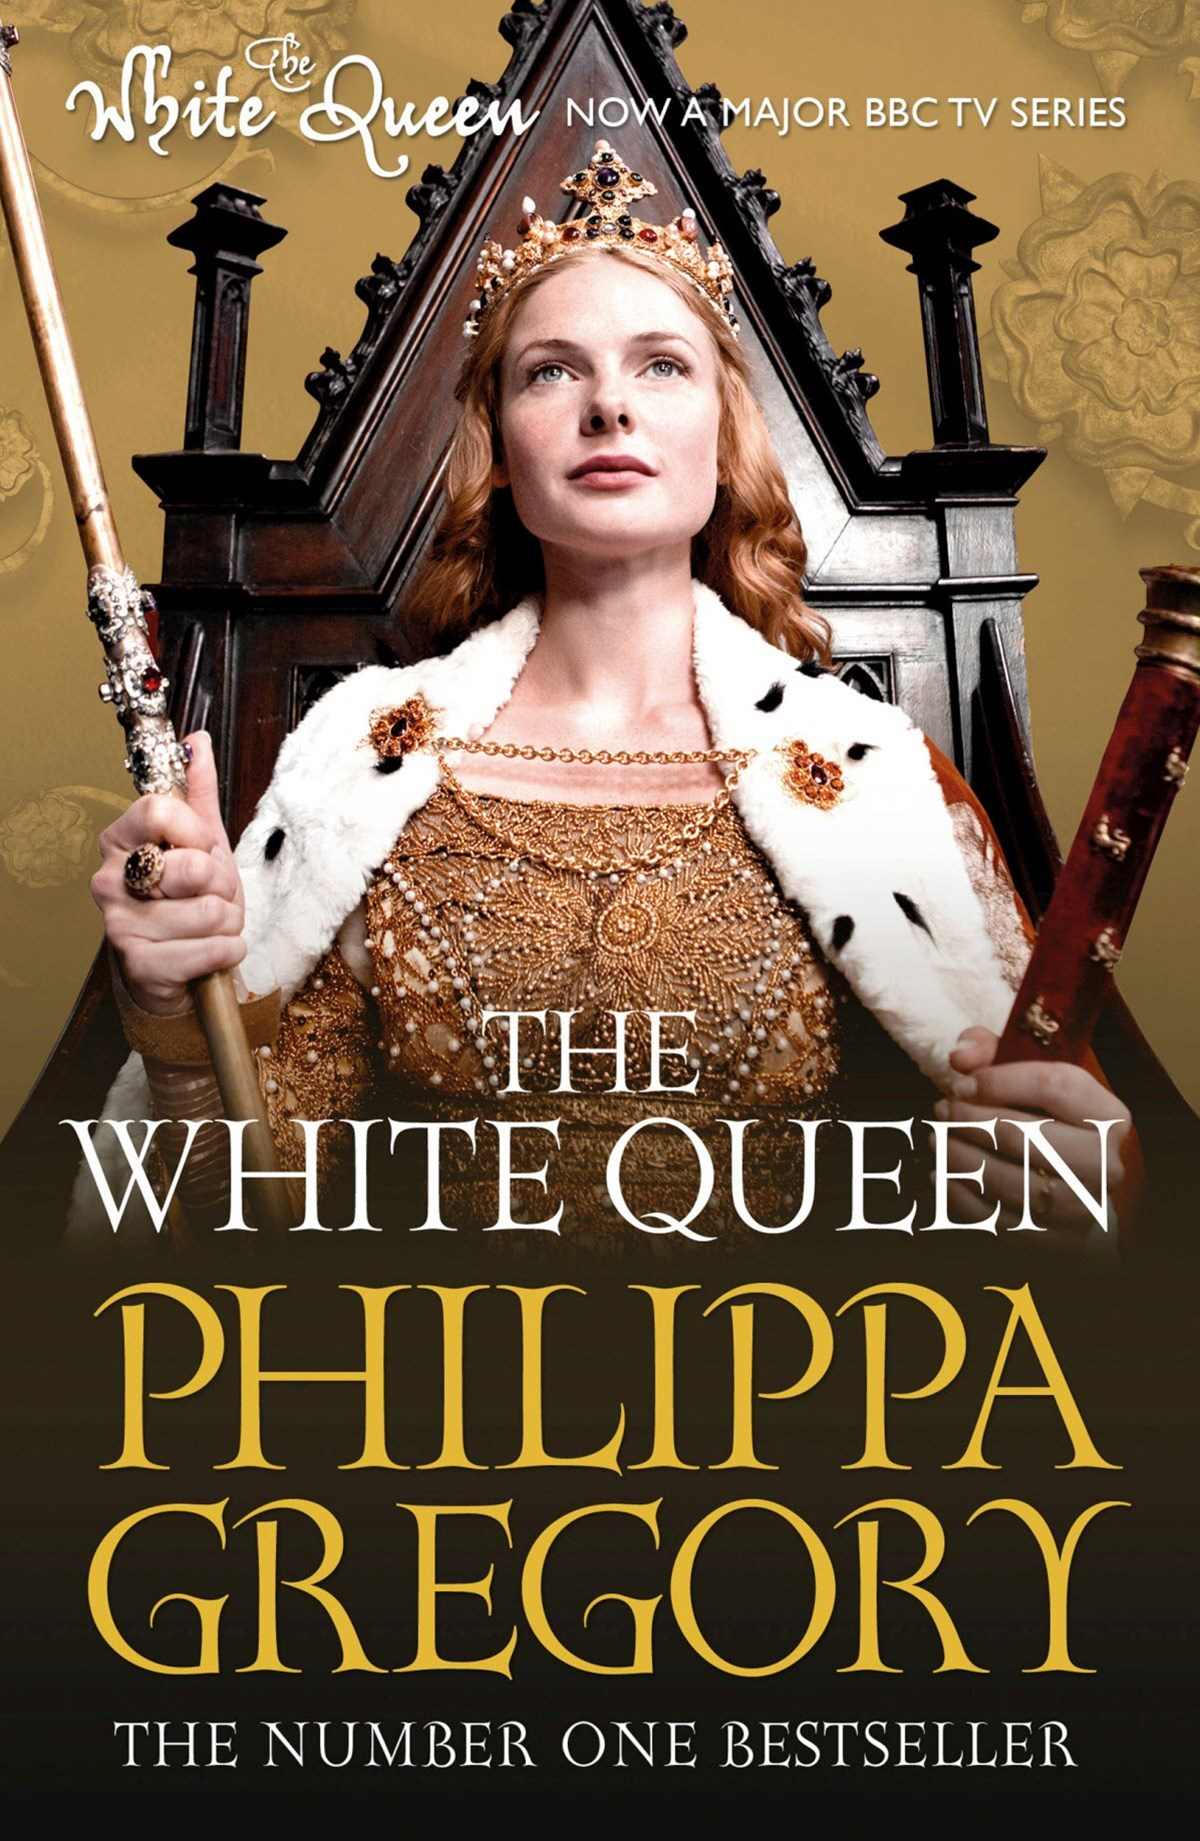 White Queen (TV Tie-in)